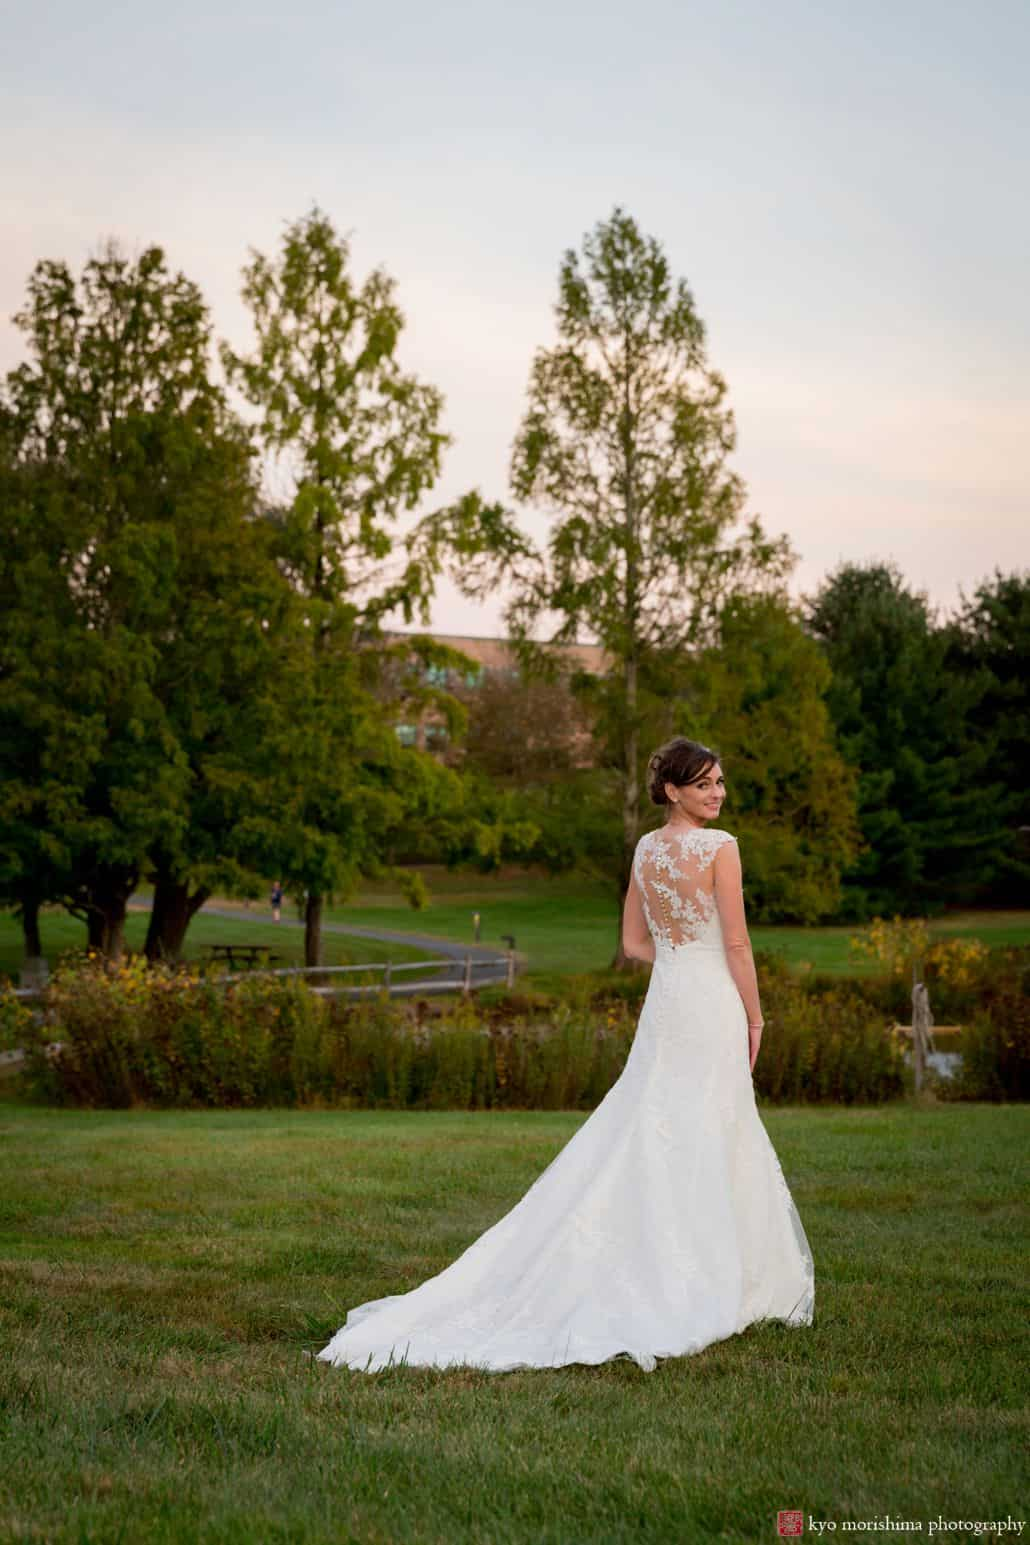 Sunset wedding ideas: bridal portrait with gentle dusk colors in the sky, photographed at Chaucey Hotel and Laurie House Garden Pavilion wedding, Princeton, NJ